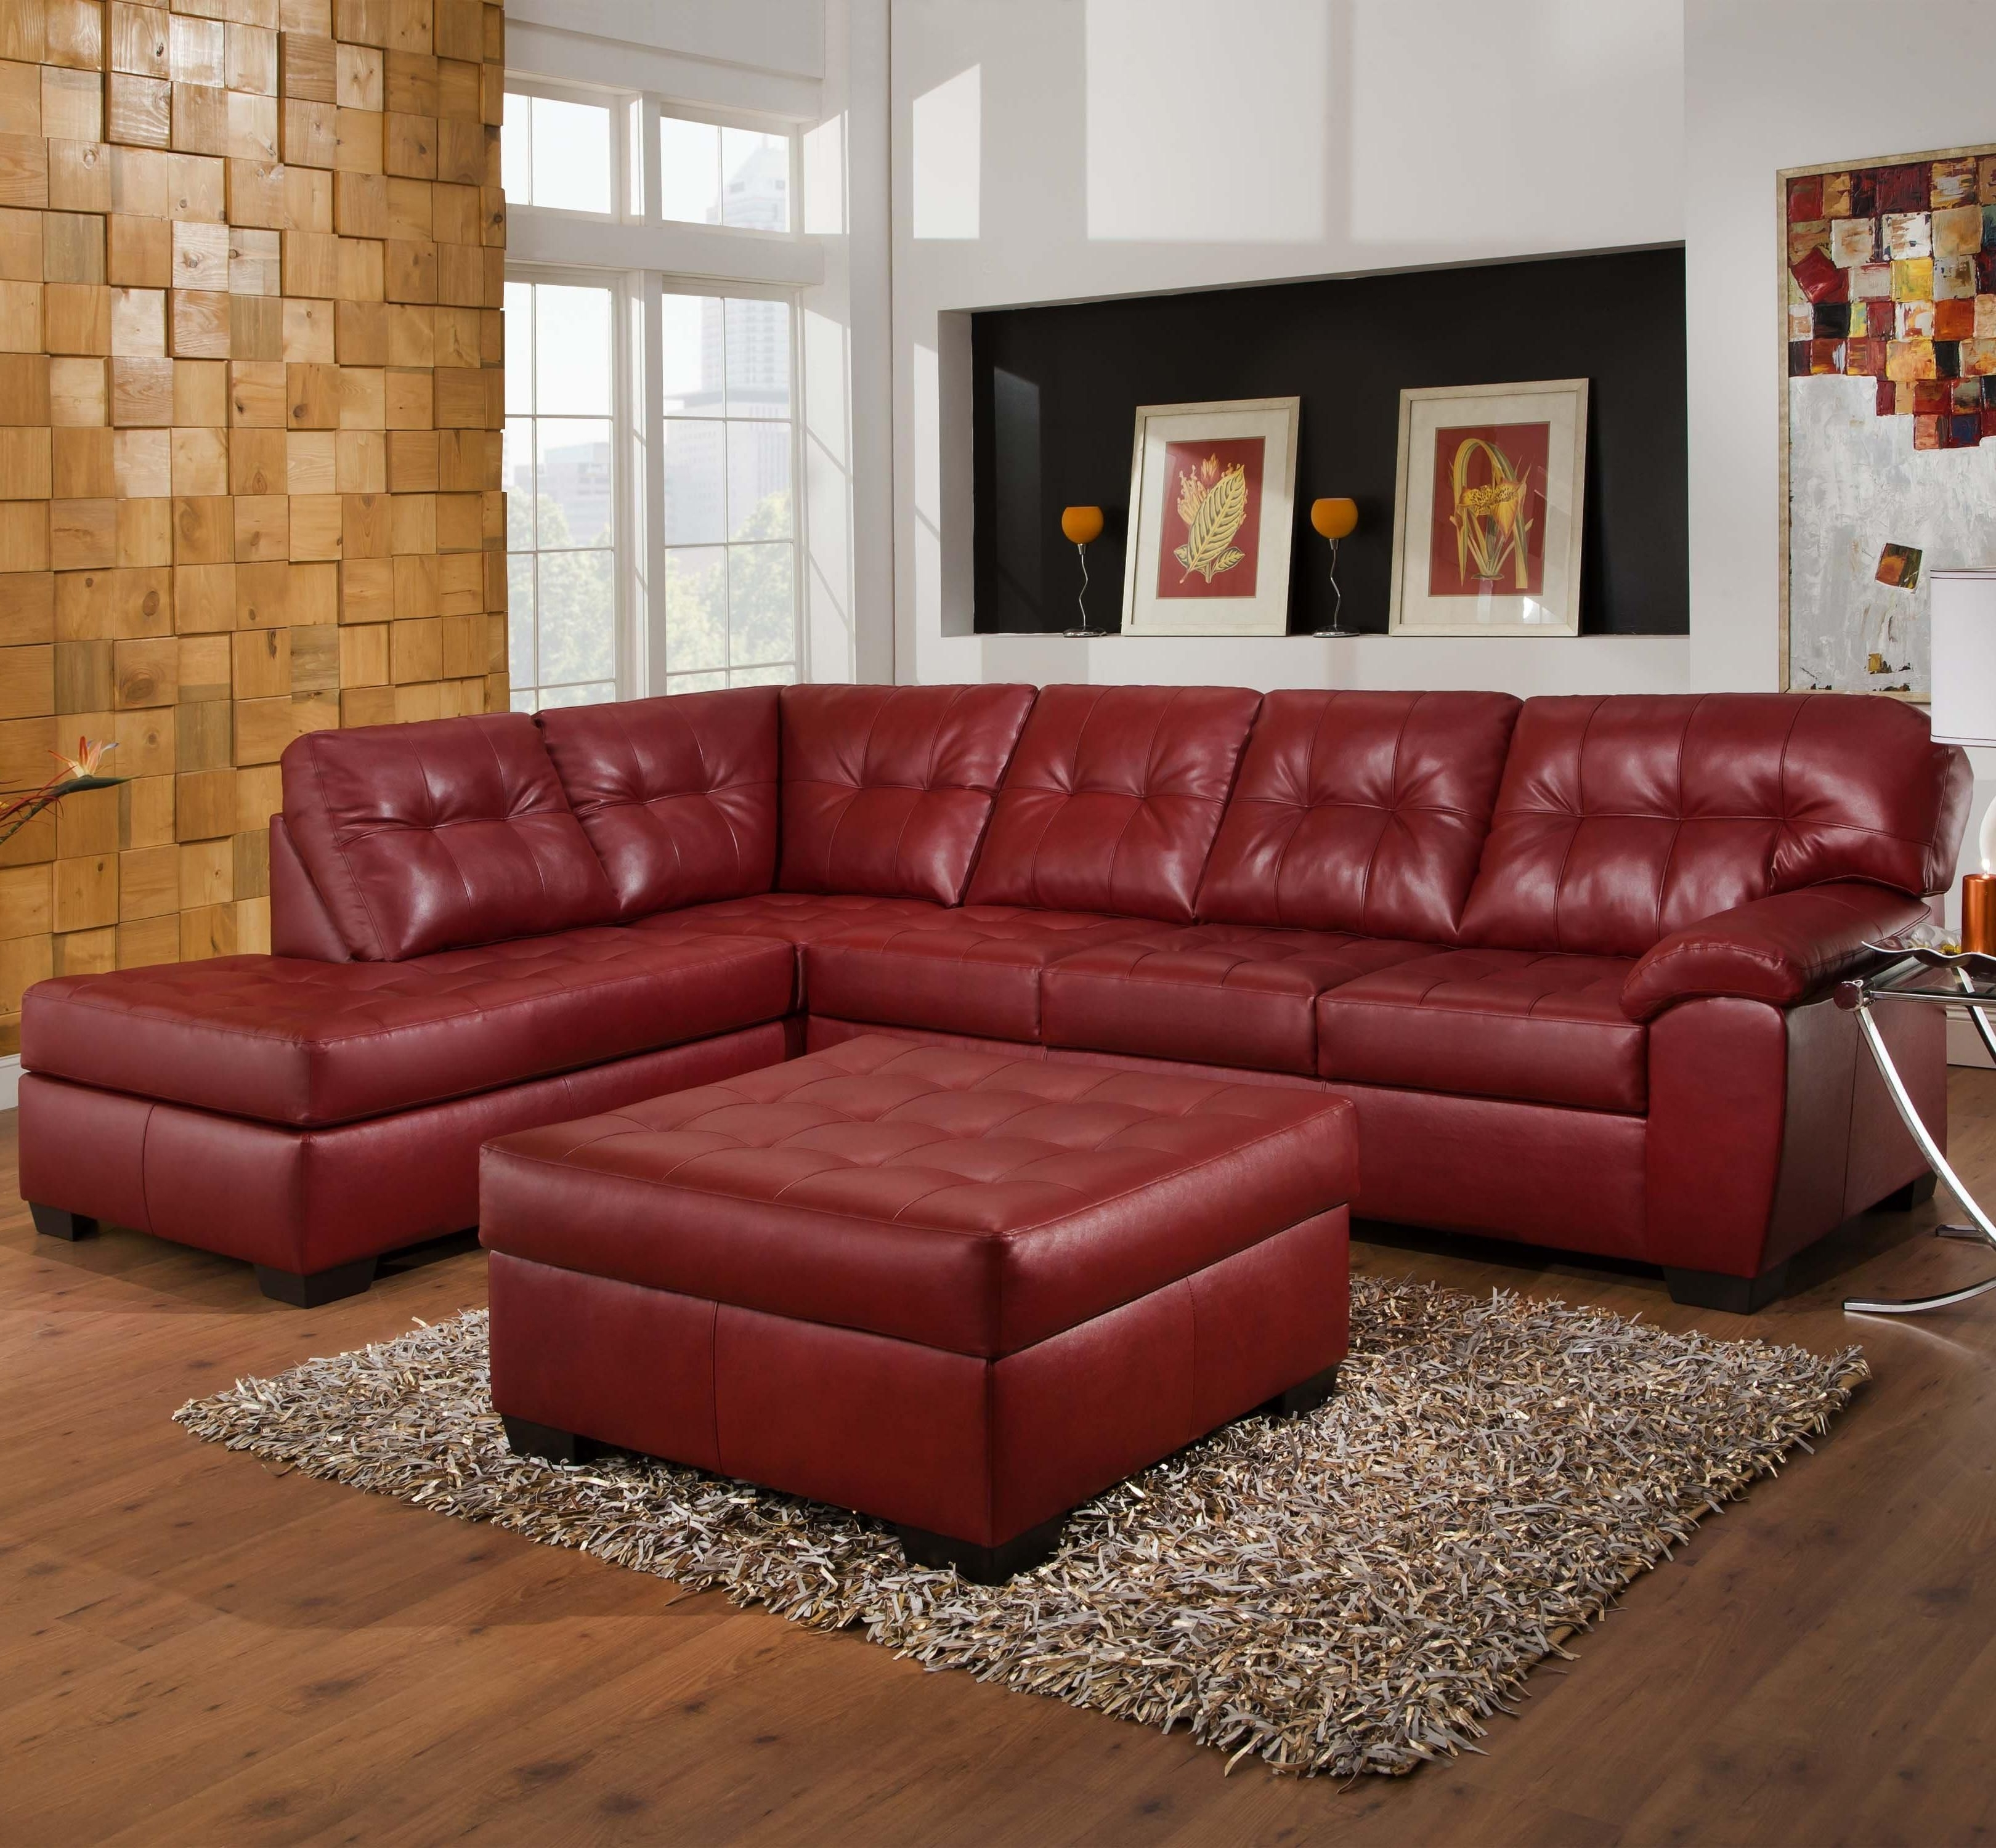 9569 2 Piece Sectional With Tufted Seats & Backsimmons Intended For Well Known Memphis Tn Sectional Sofas (View 2 of 15)